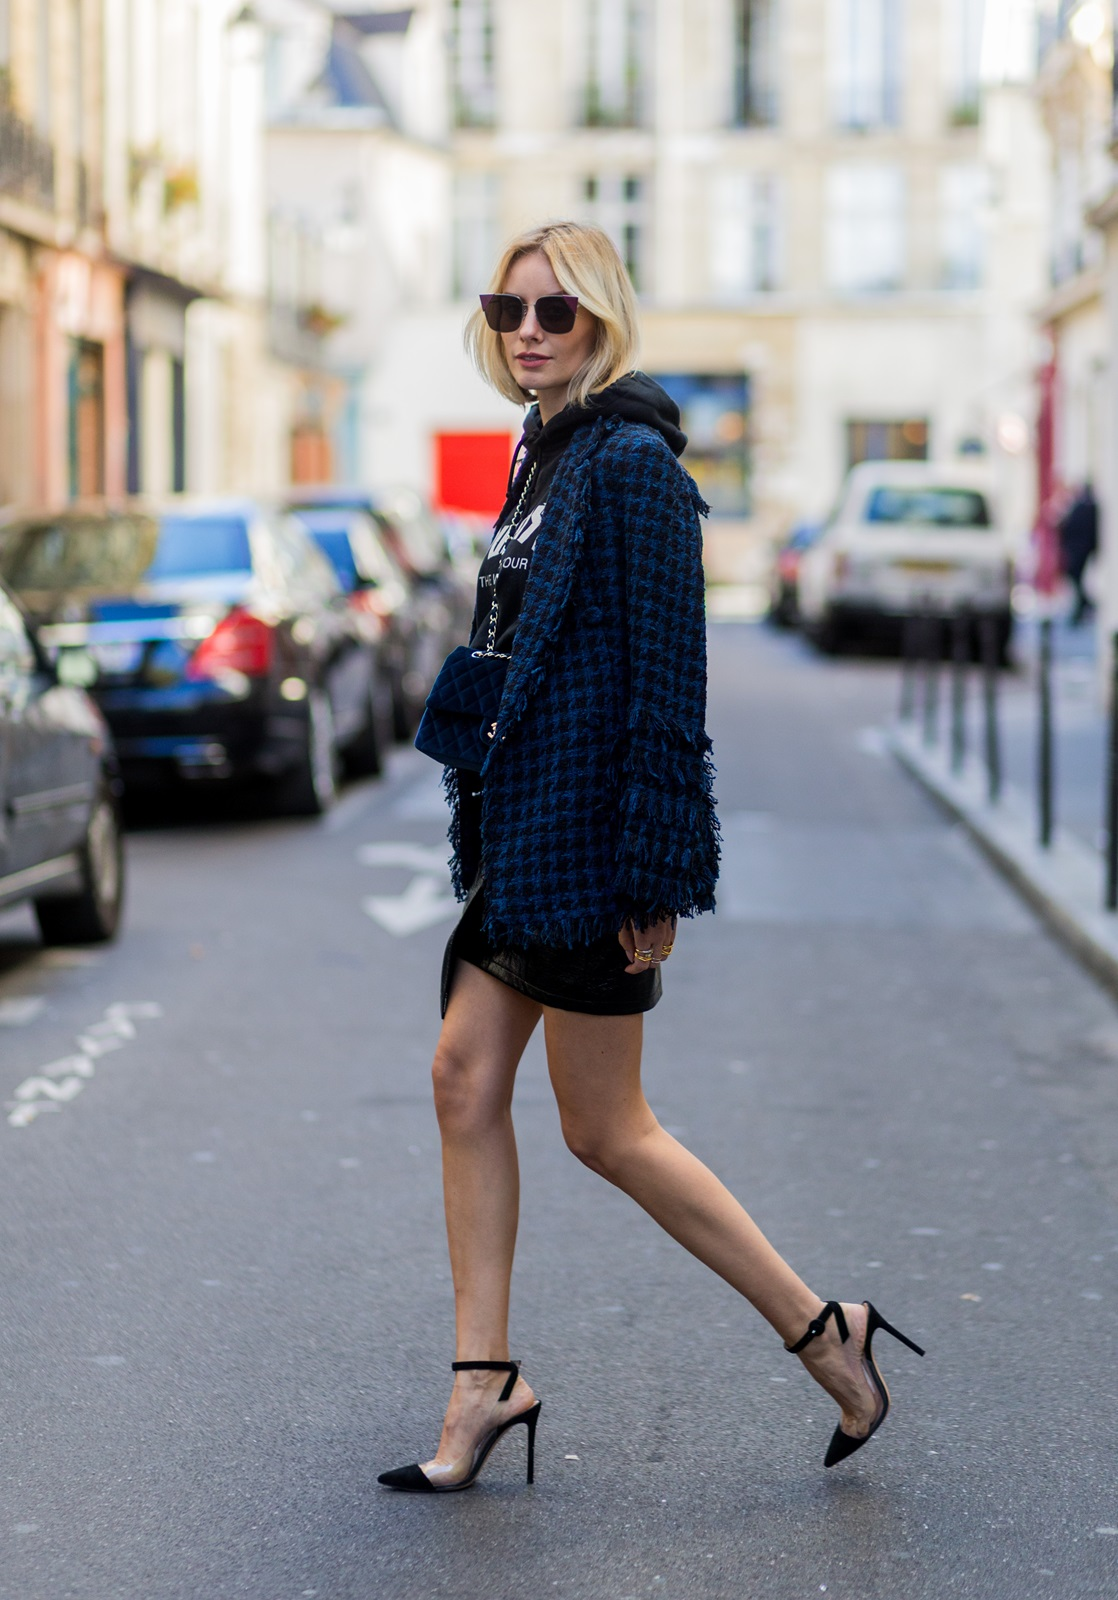 PARIS, FRANCE - OCTOBER 03: German fashion blogger Lisa Hahnbueck (@lisarvd) wearing blazer: Tweed Blazer MSGM hoodie: Justin Bieber Purpose Tour Merchandise Sweatshirt Skirt: Patent Asymmetric Leather Skirt Mango, Heels: Plexi Heels Gianvito Rossi, Bag: Chanel Velvet Classic Flap Bag, sunglasses: Fendi outside Hermes on October 3, 2016 in Paris, France. (Photo by Christian Vierig/Getty Images) *** Local Caption *** Lisa Hahnbueck